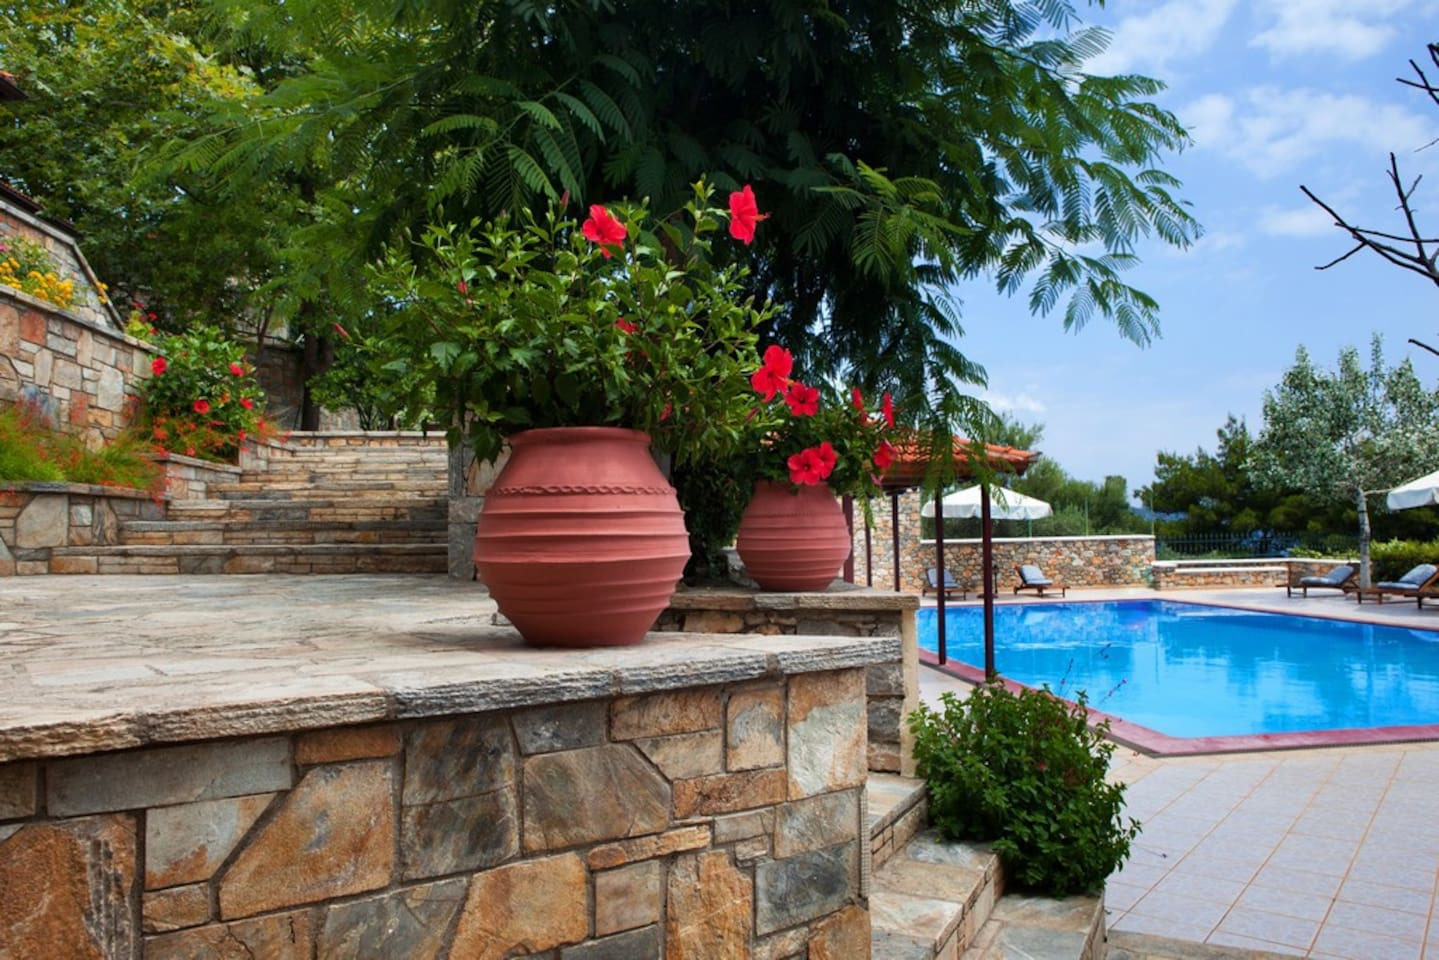 Our garden and swimming pool